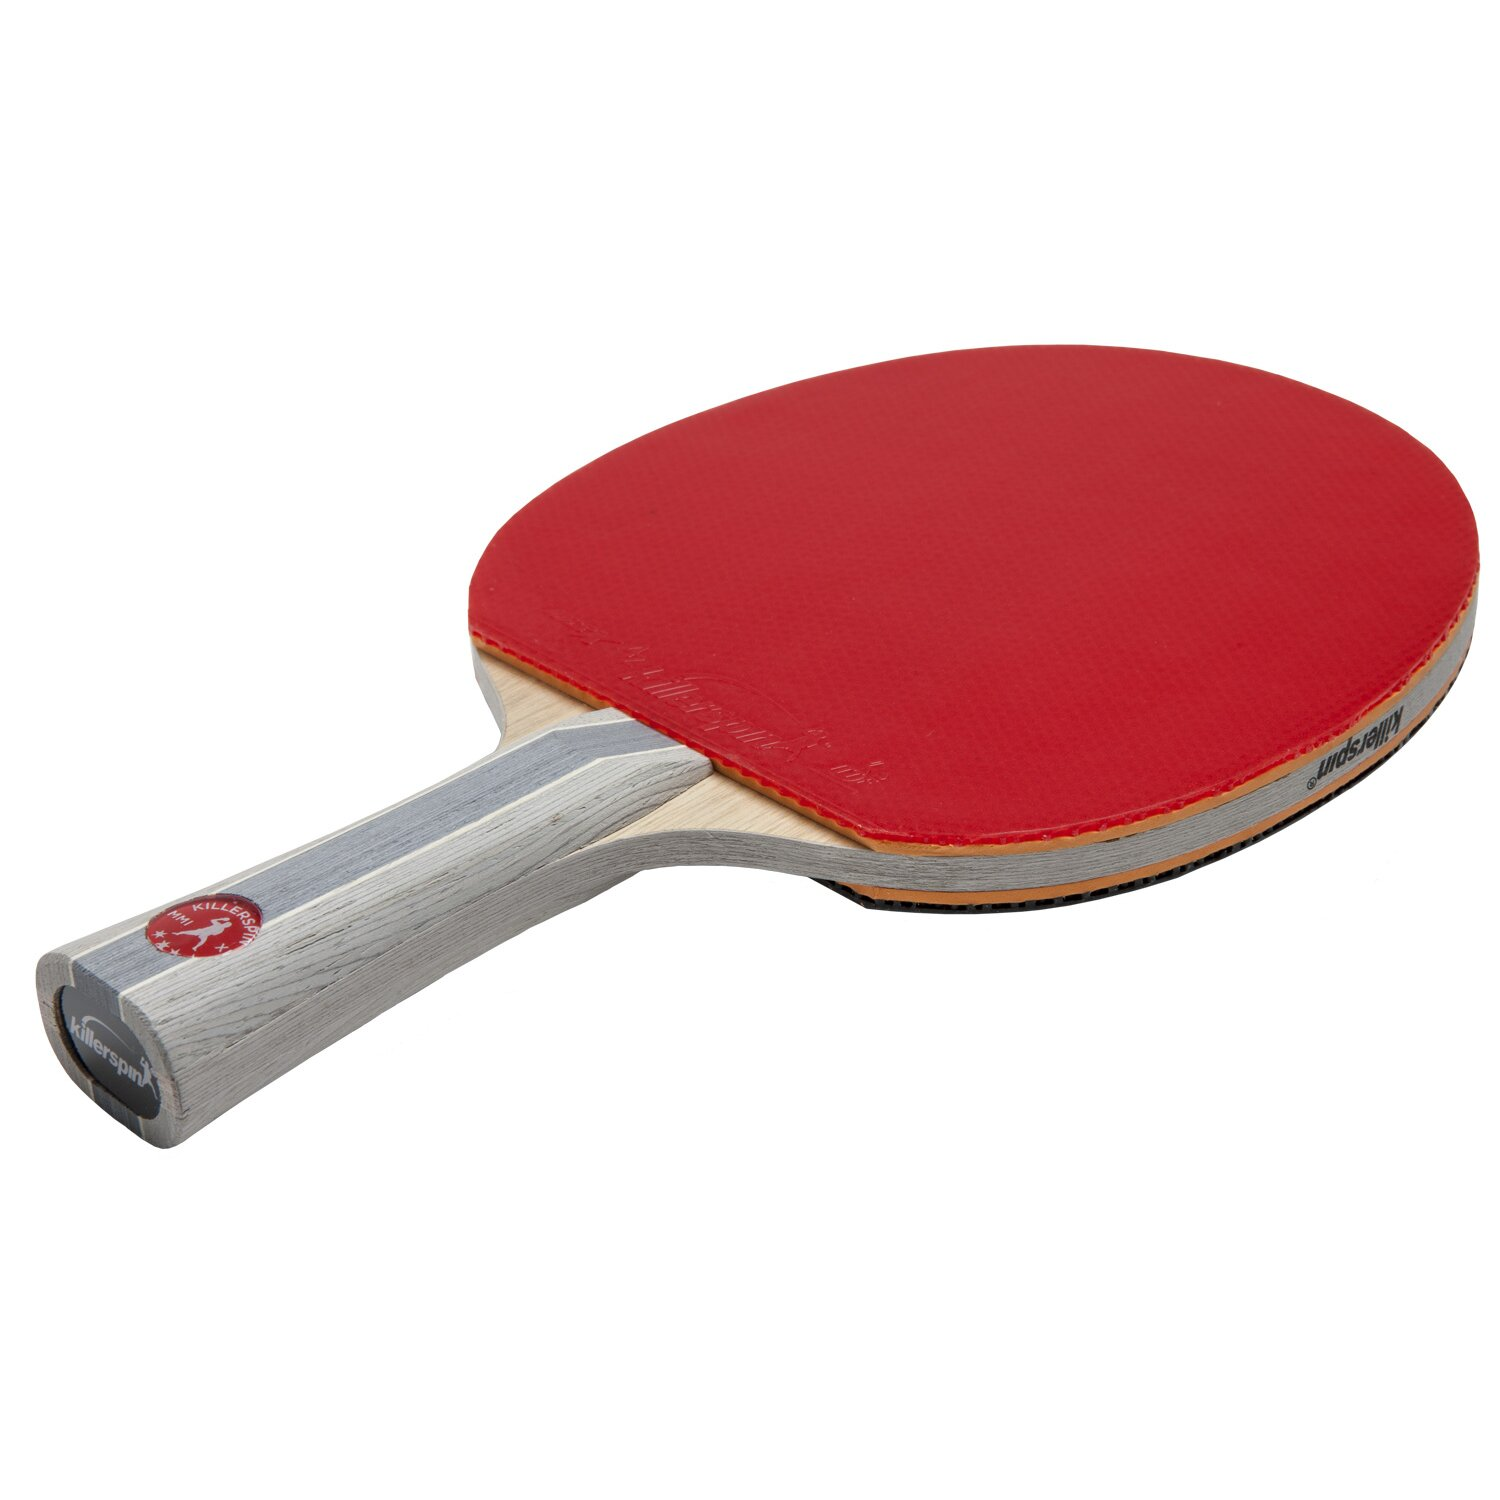 Superb img of Killerspin Jet 700 Wood 7 Layer Table Tennis Racket with Flared Handle  with #A7242C color and 1500x1500 pixels